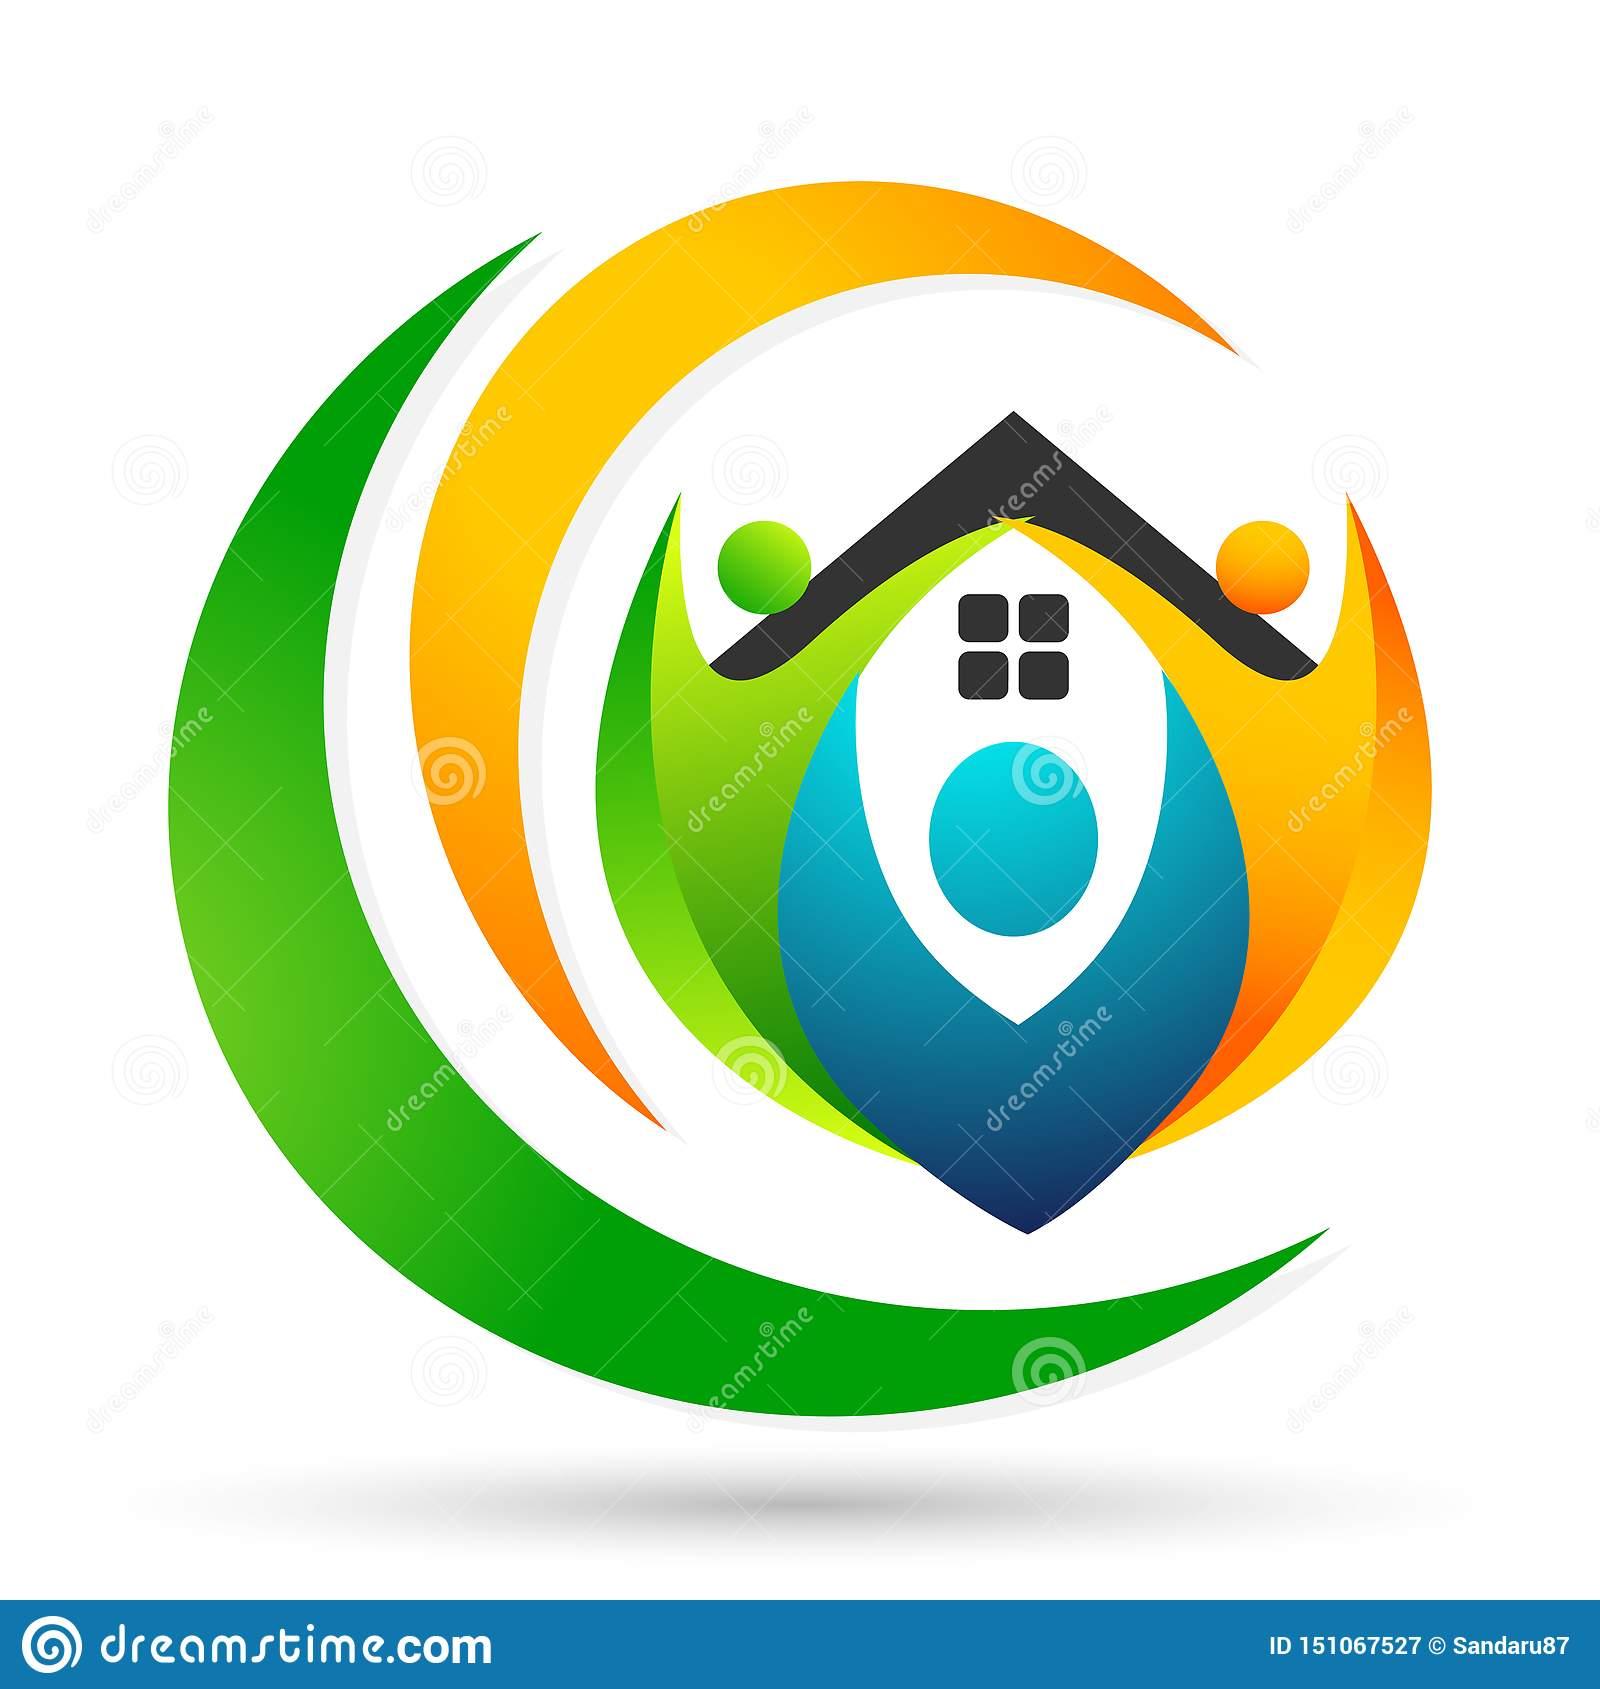 Happy family in home union logo, family, parent, kids,green love, parenting, care, symbol icon design vector on white background